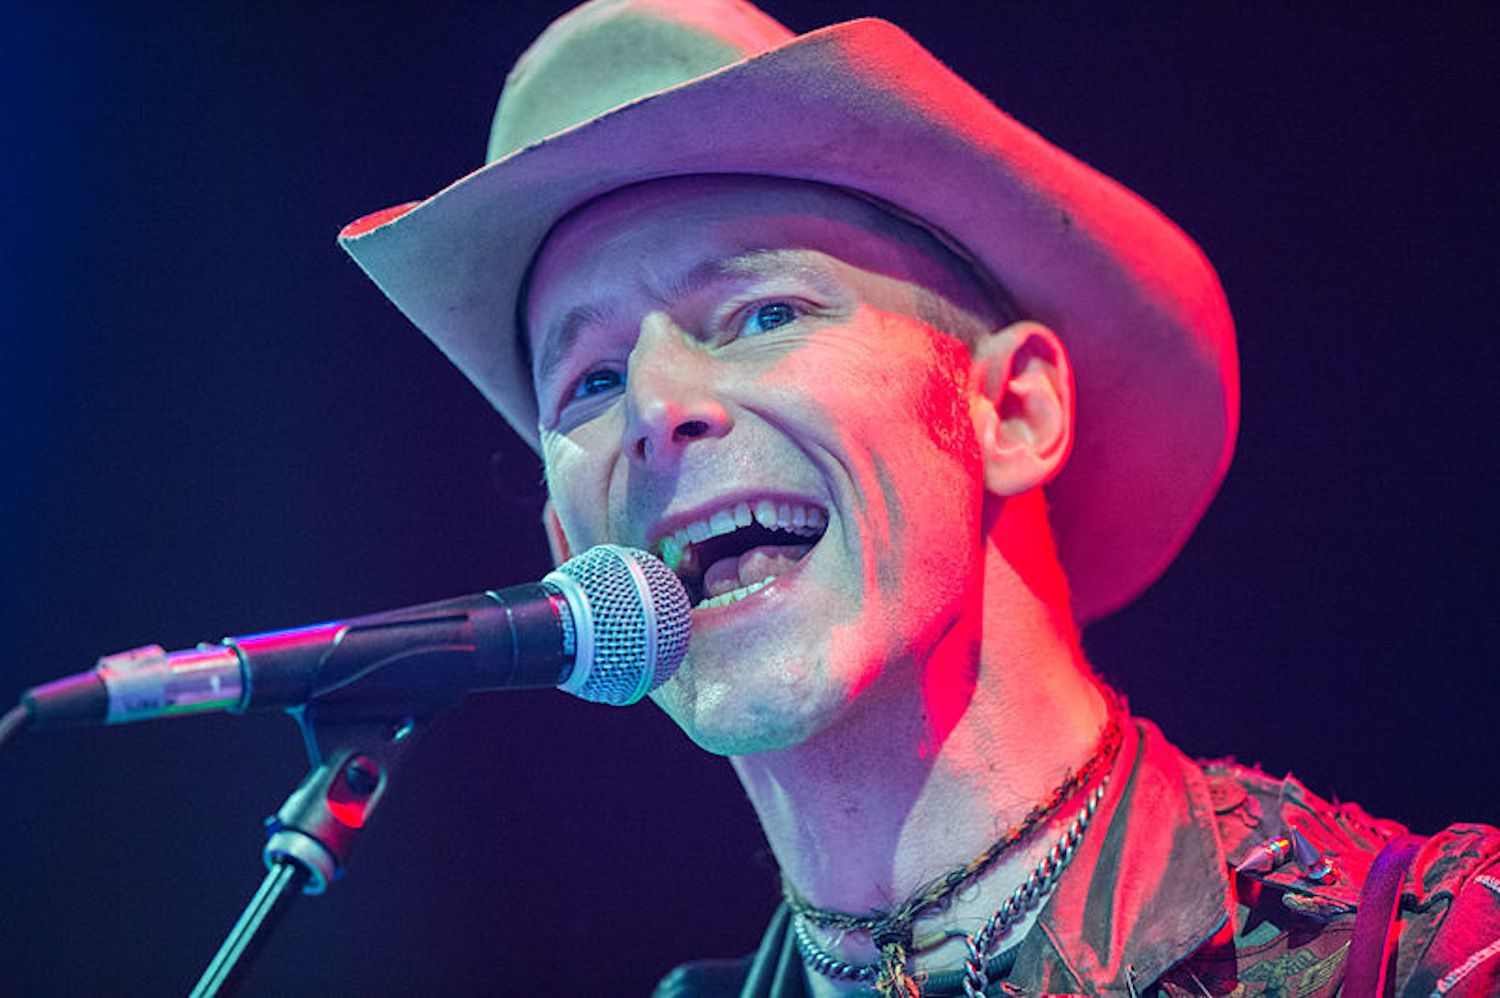 Hank Williams III performs at a music festival